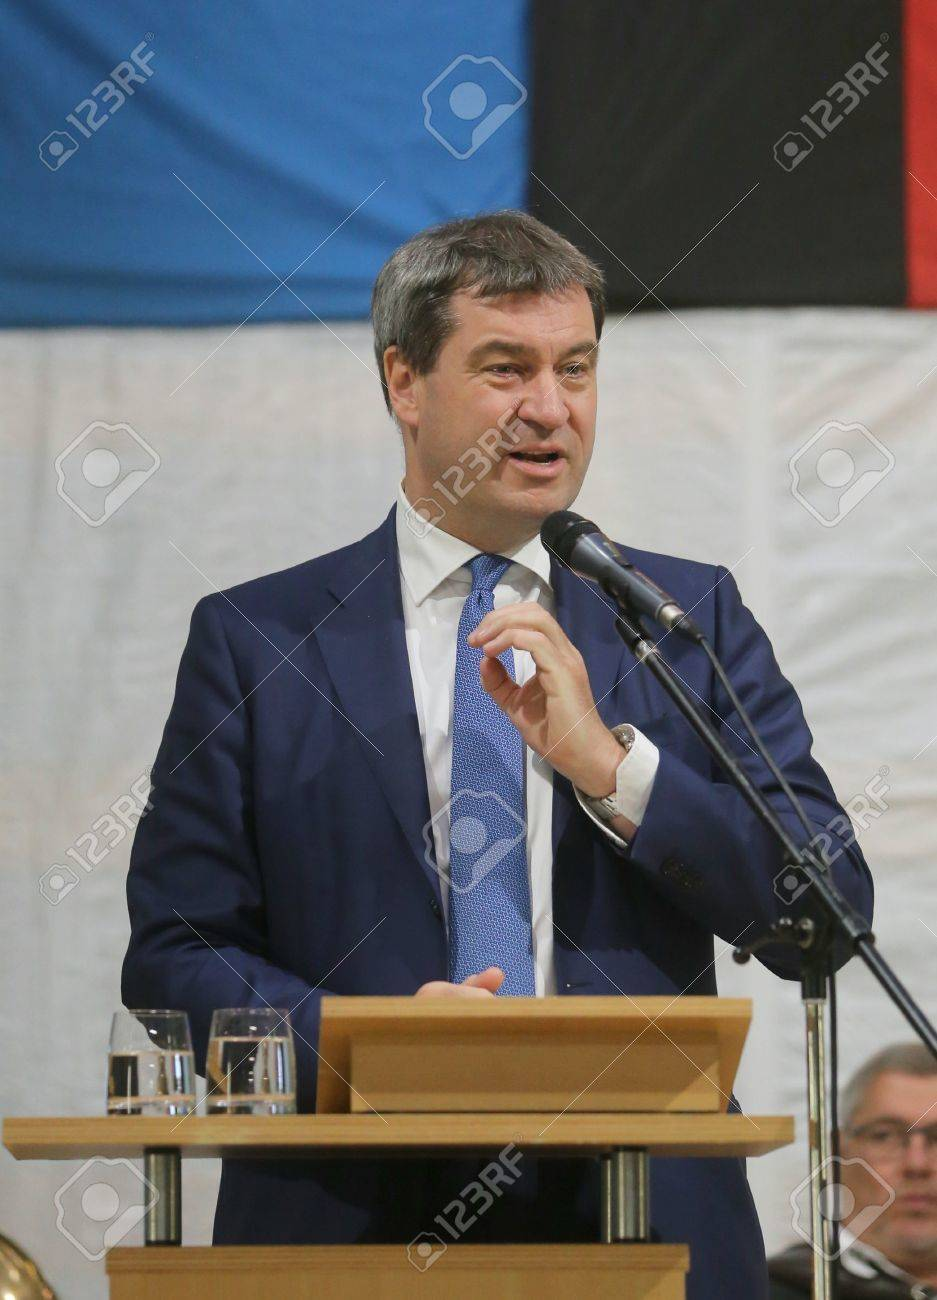 May 15, 2017 - Munich, Germany - Markus Soeder, CSU, Bavarian Minister of State for Finance, for Country Development and Home at a topping-out ceremony of a government building Standard-Bild - 86160245